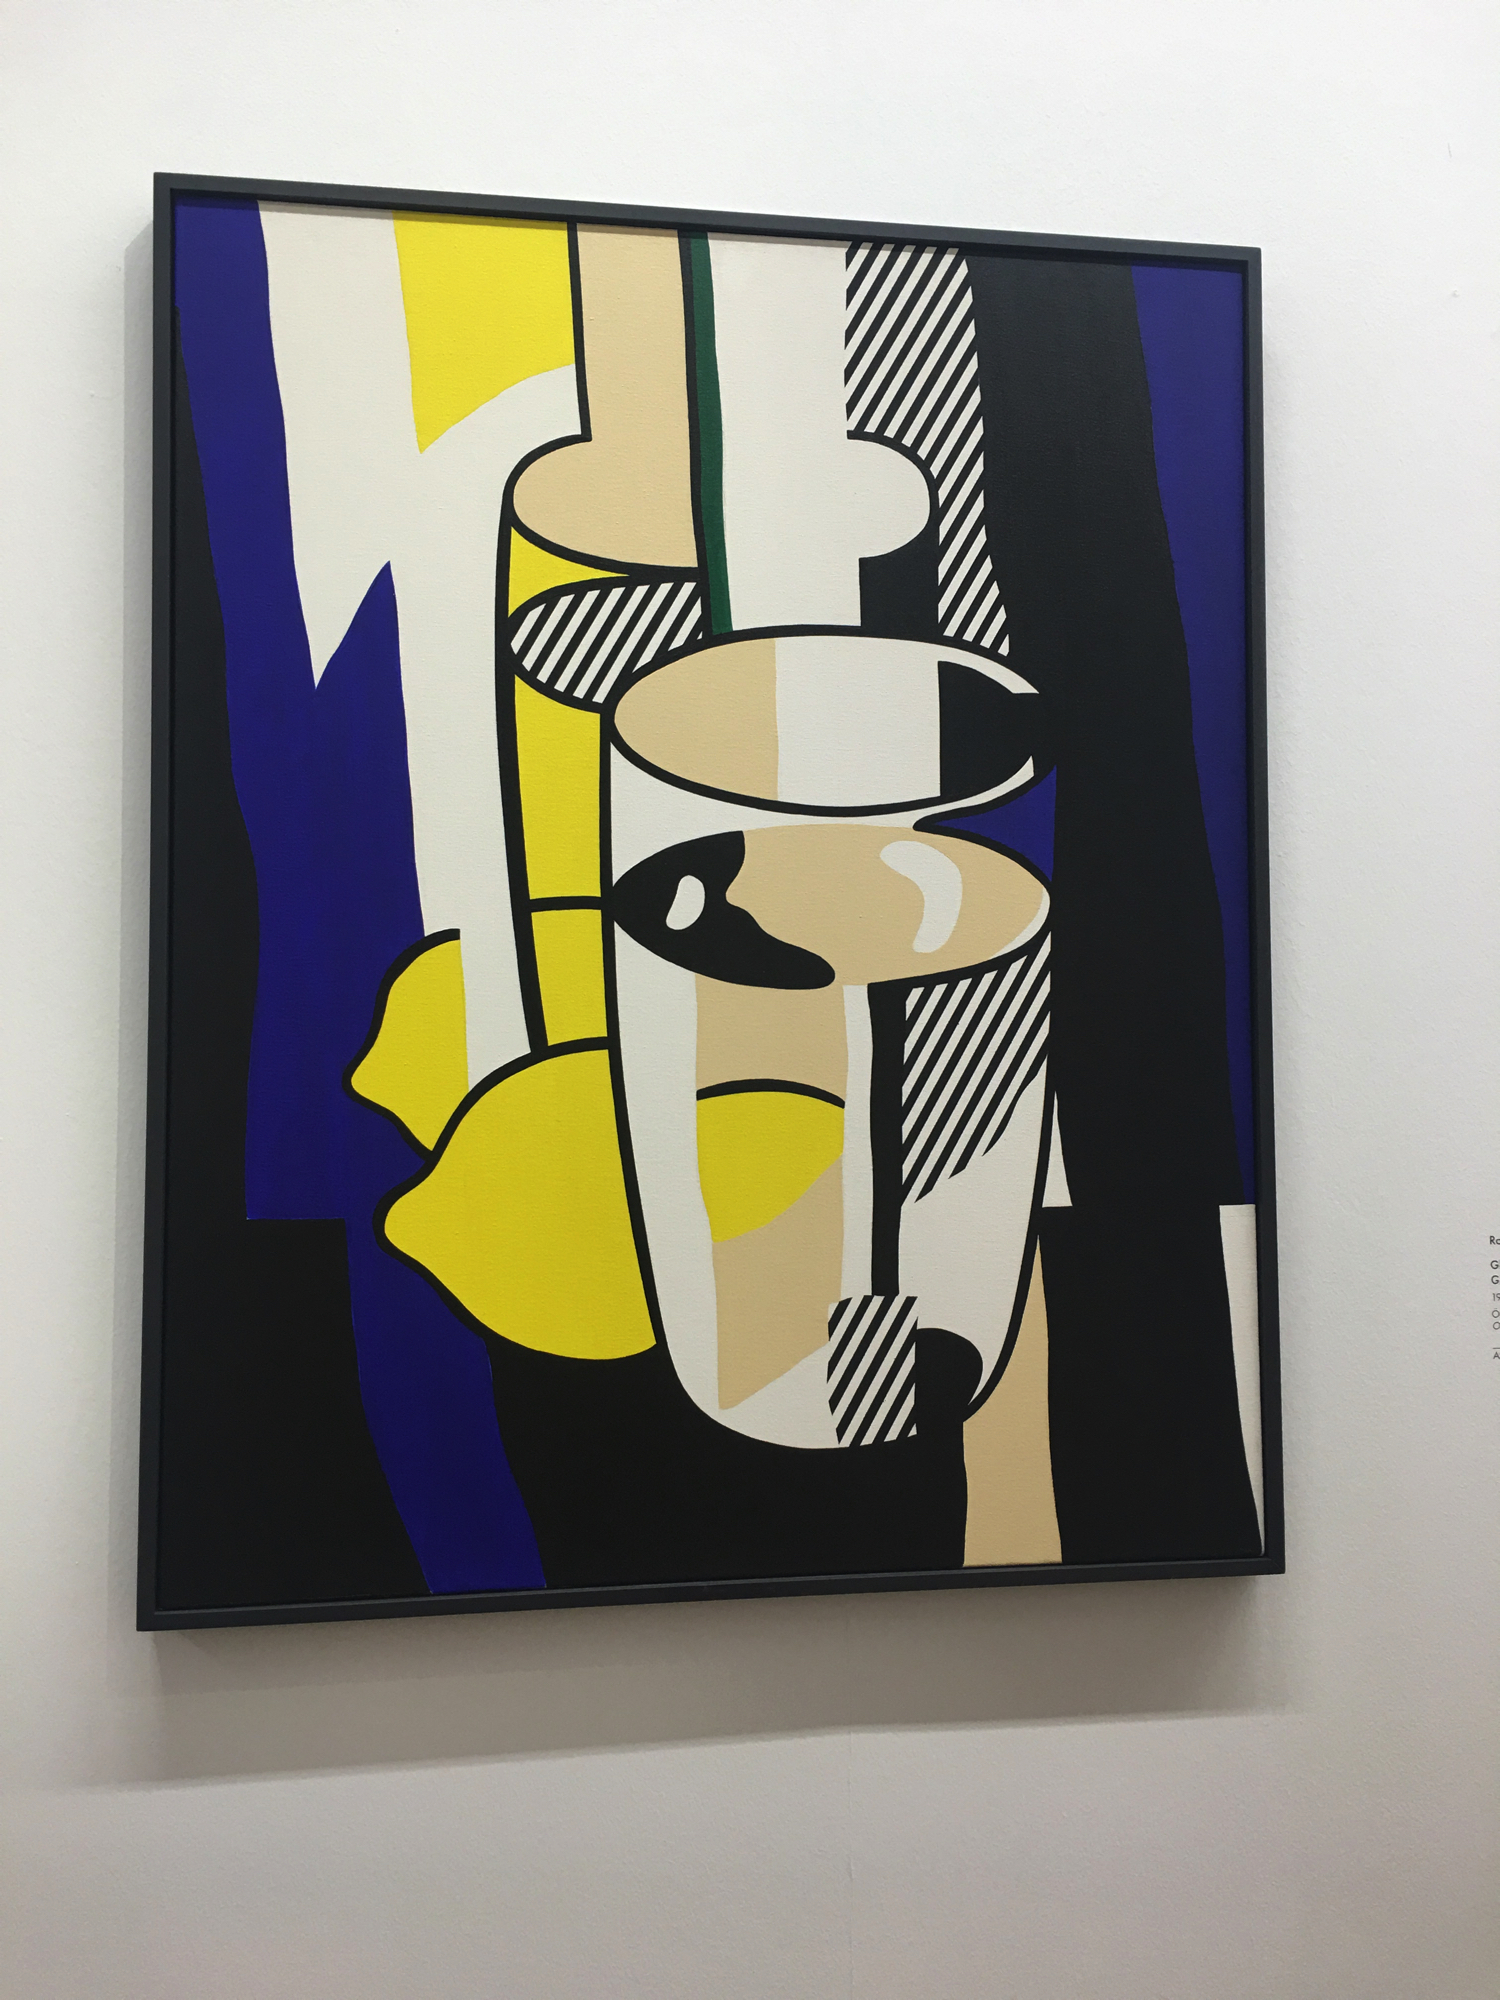 Roy Lichtenstein, Glass and Lemon before a Mirror, 1974, Collezione Batliner, Albertina Museum, Vienna